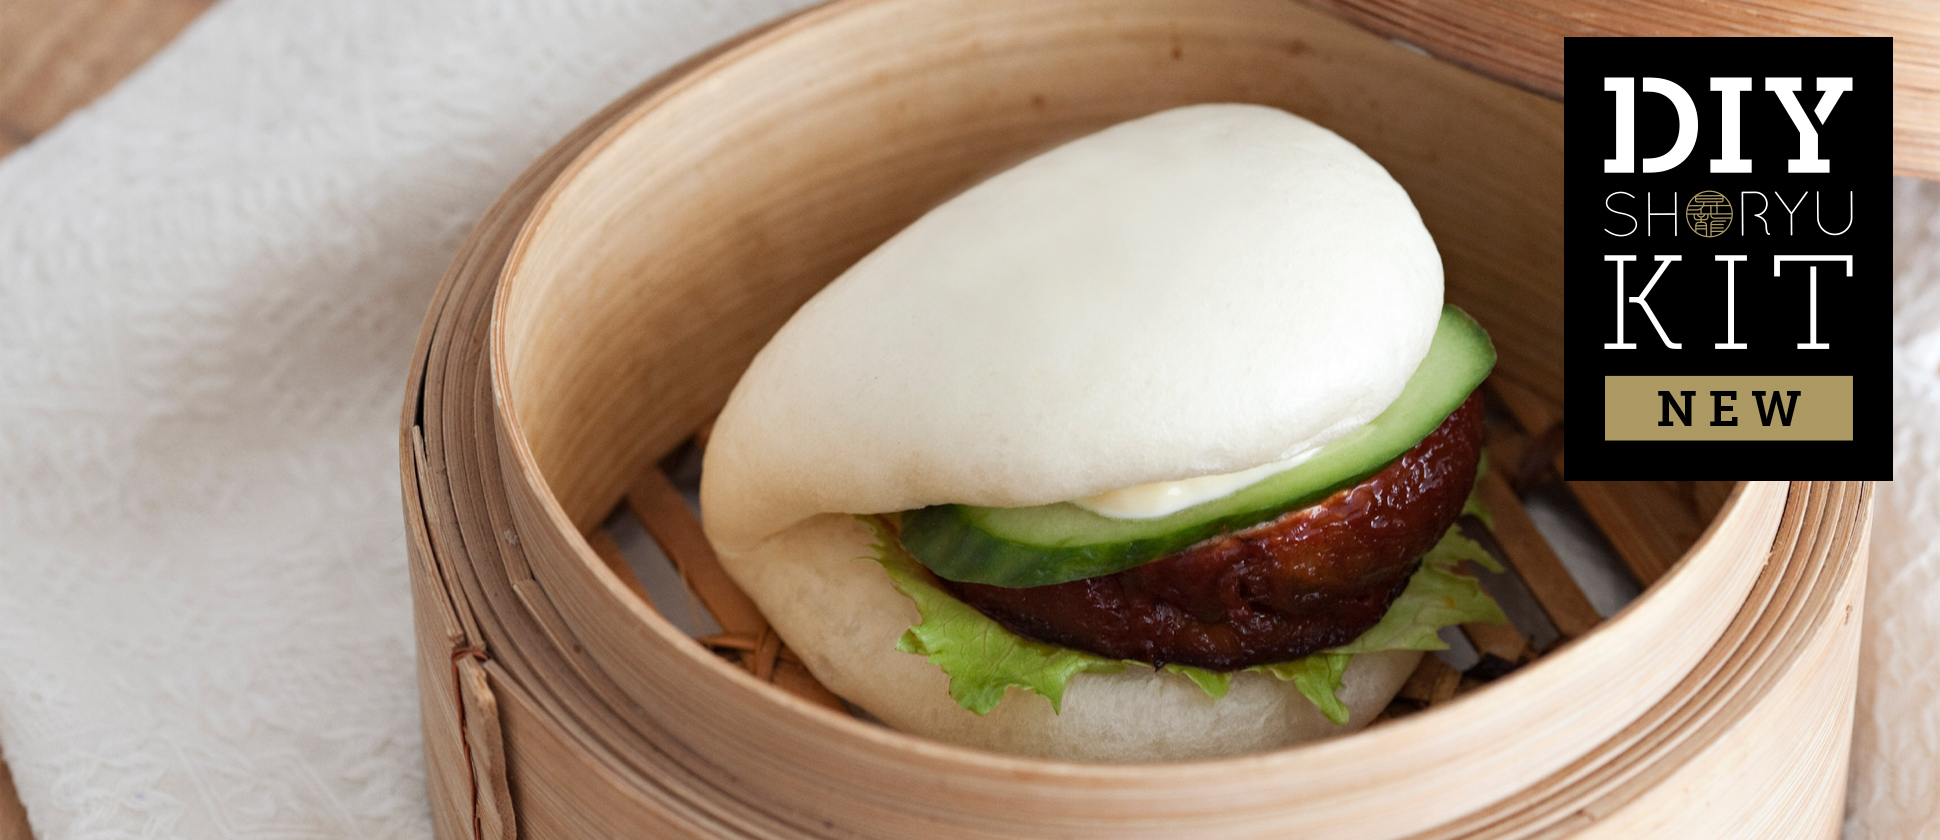 New DIY Shoryu Kits Fluffy BBQ Pork Buns